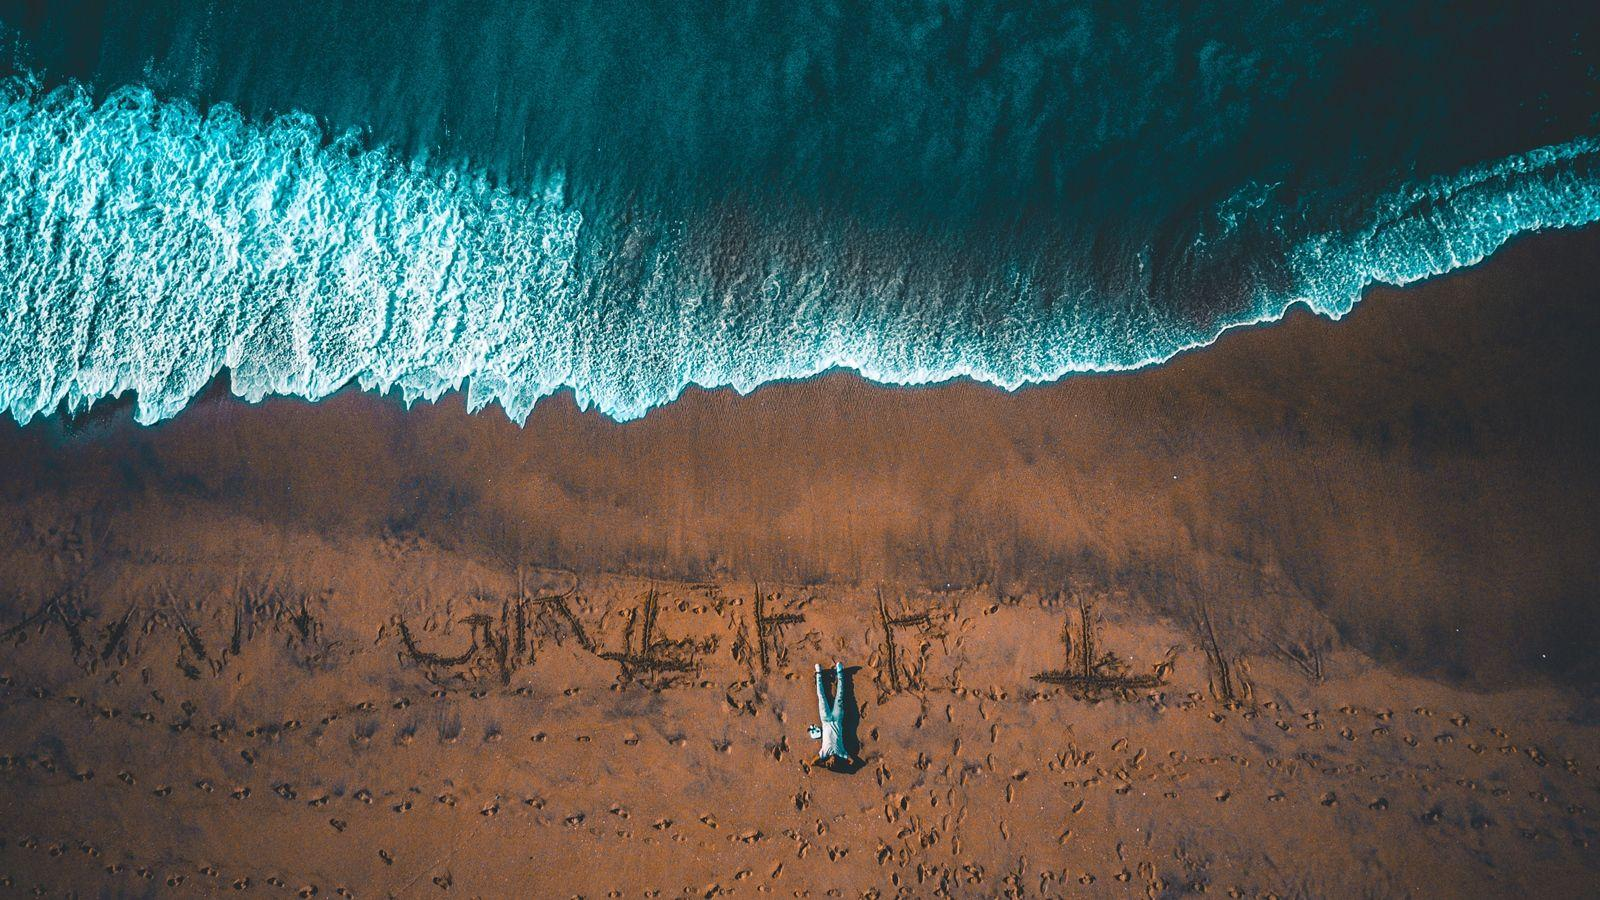 Download wallpapers 1600x900 man, ocean, view from above, shore, surf